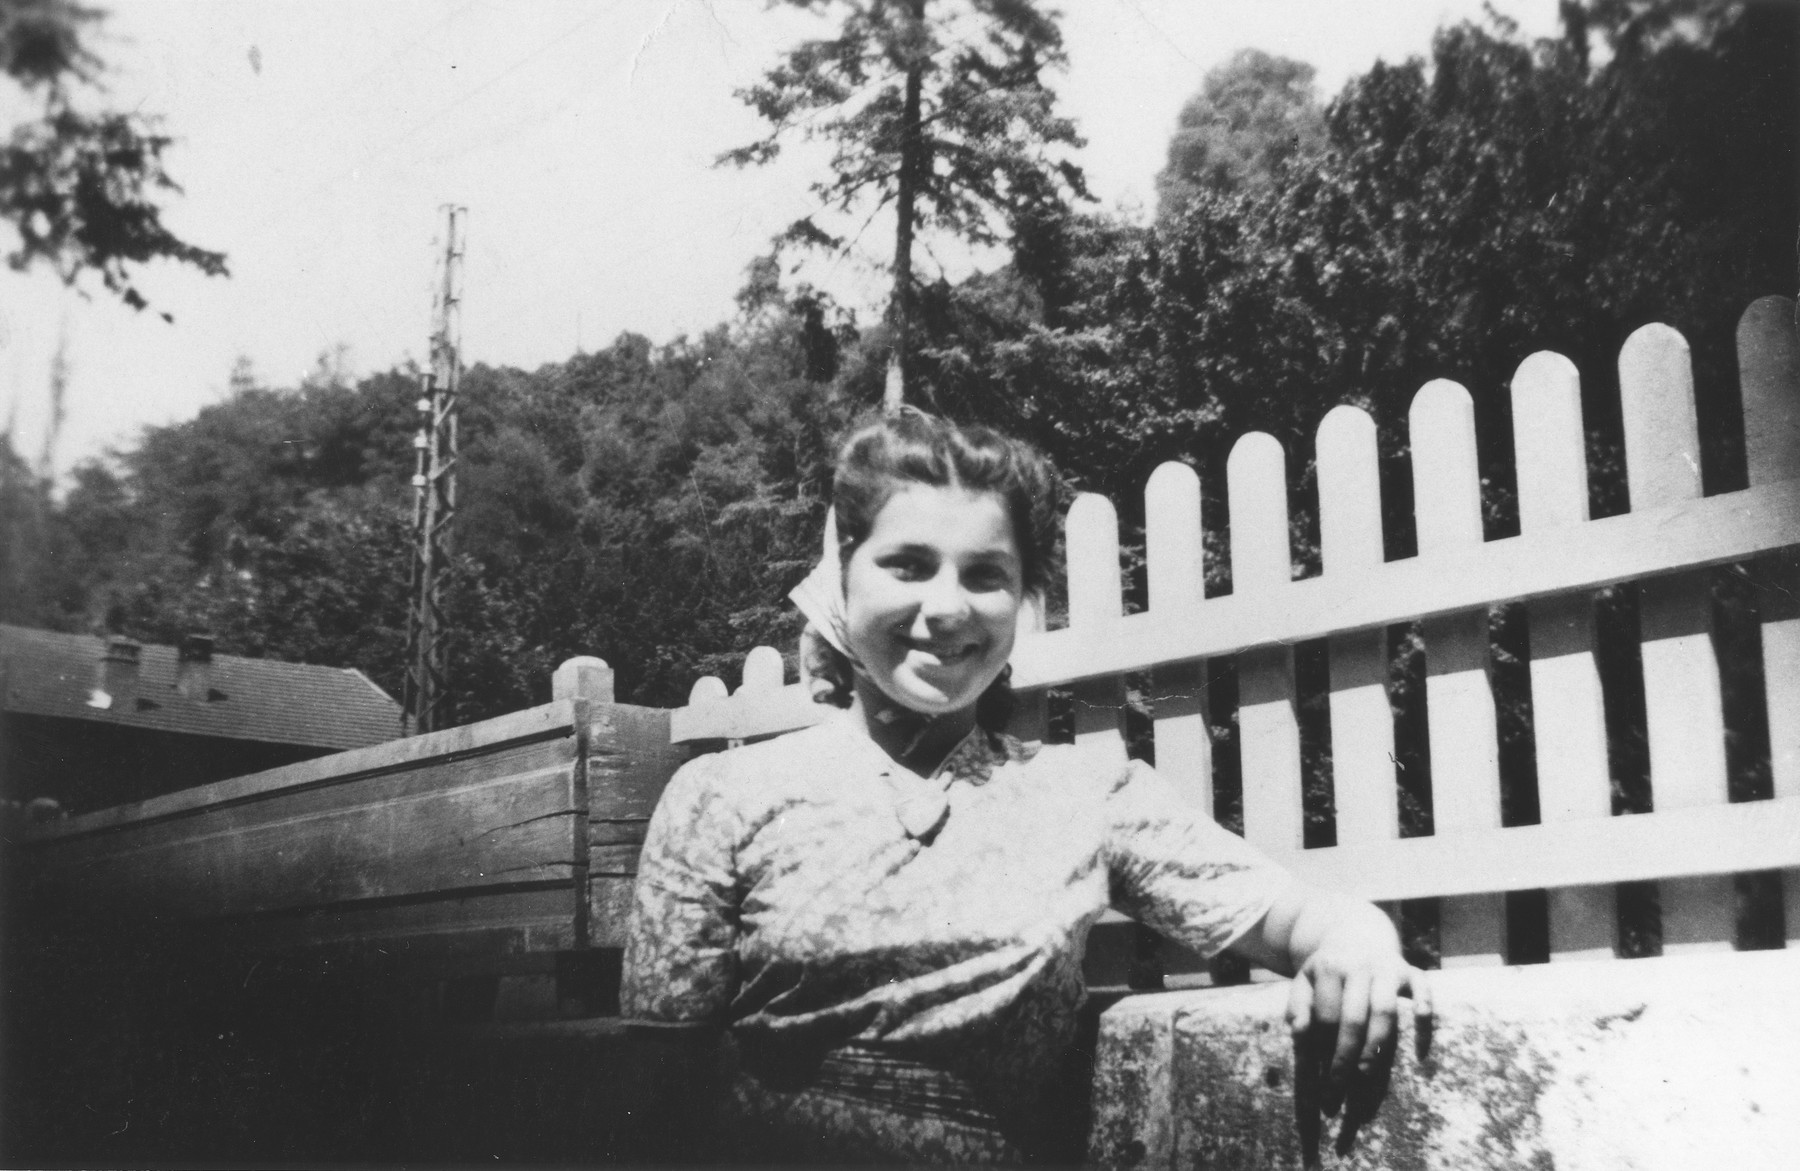 Ruth Advokat, a Jewish refugee living at the Chabannes children's home, poses in front of a fence at the farm where she worked near the home.